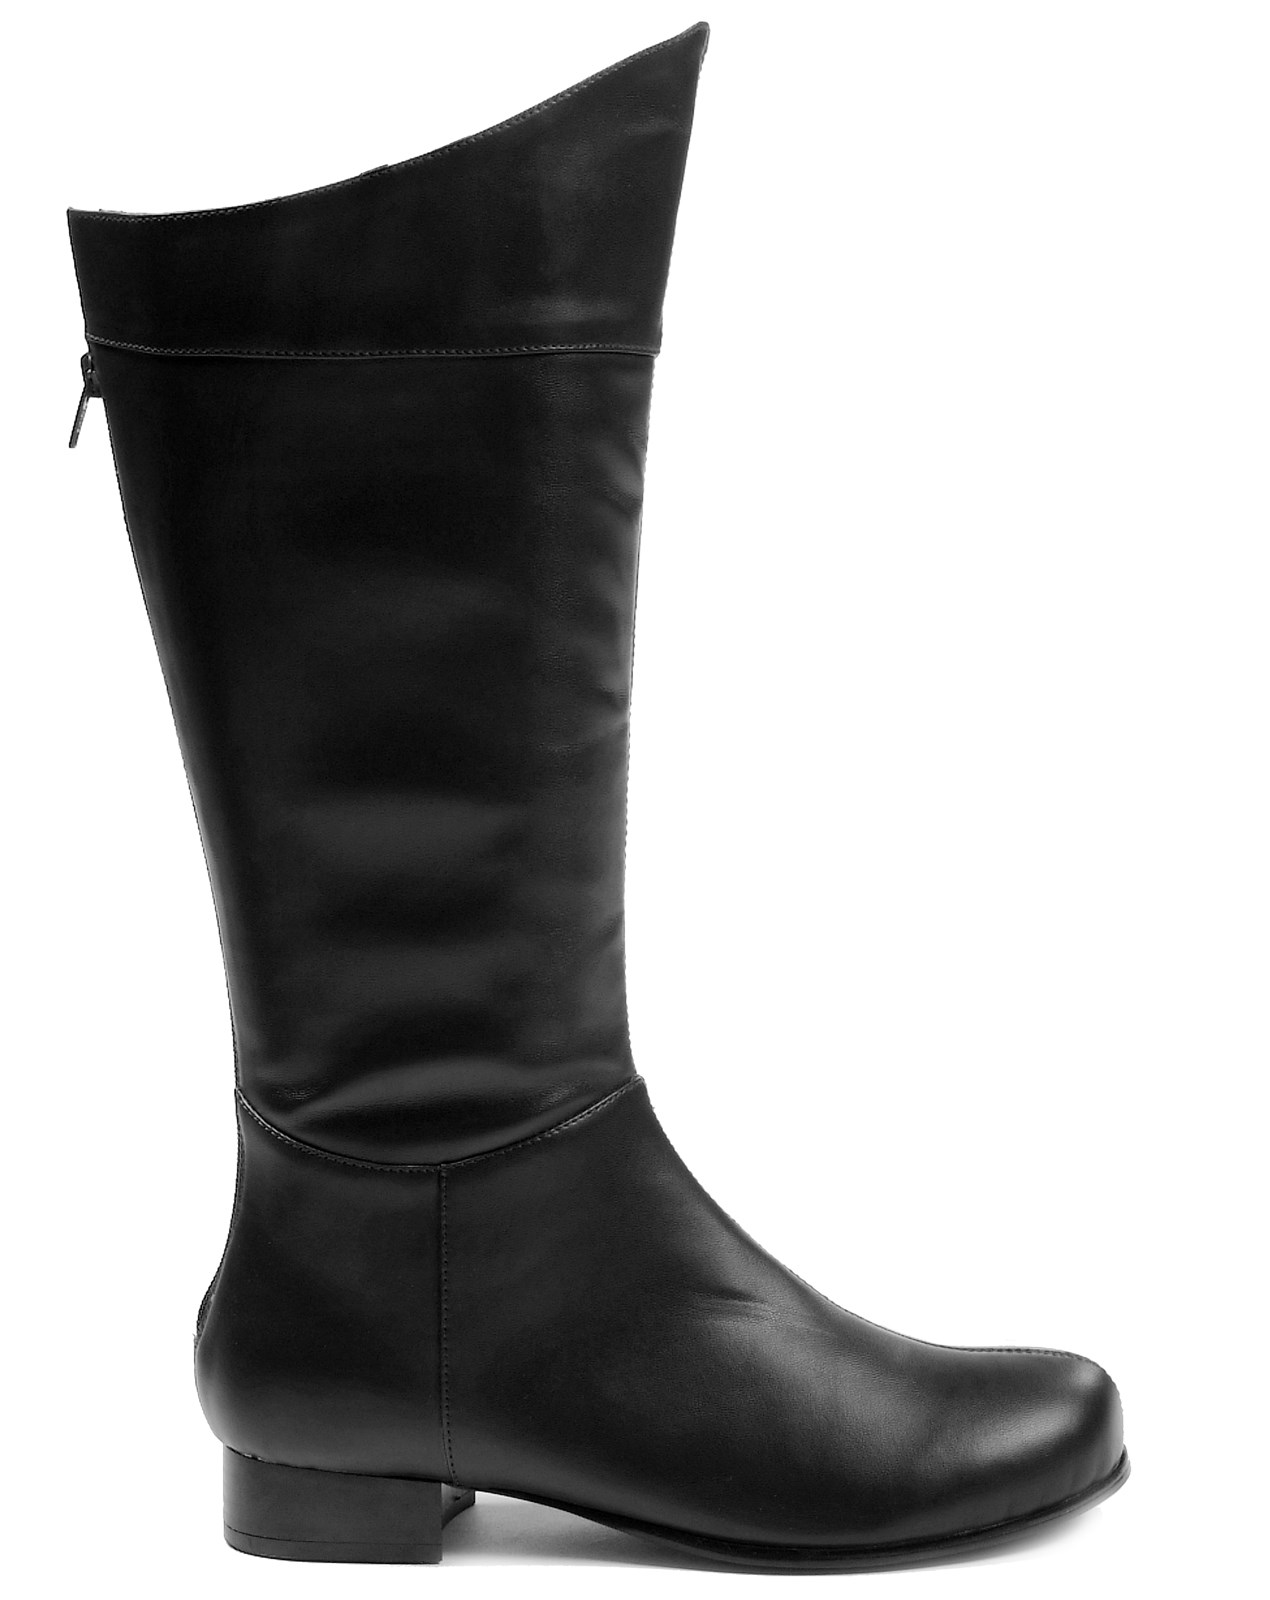 Boots Adult Costume 27